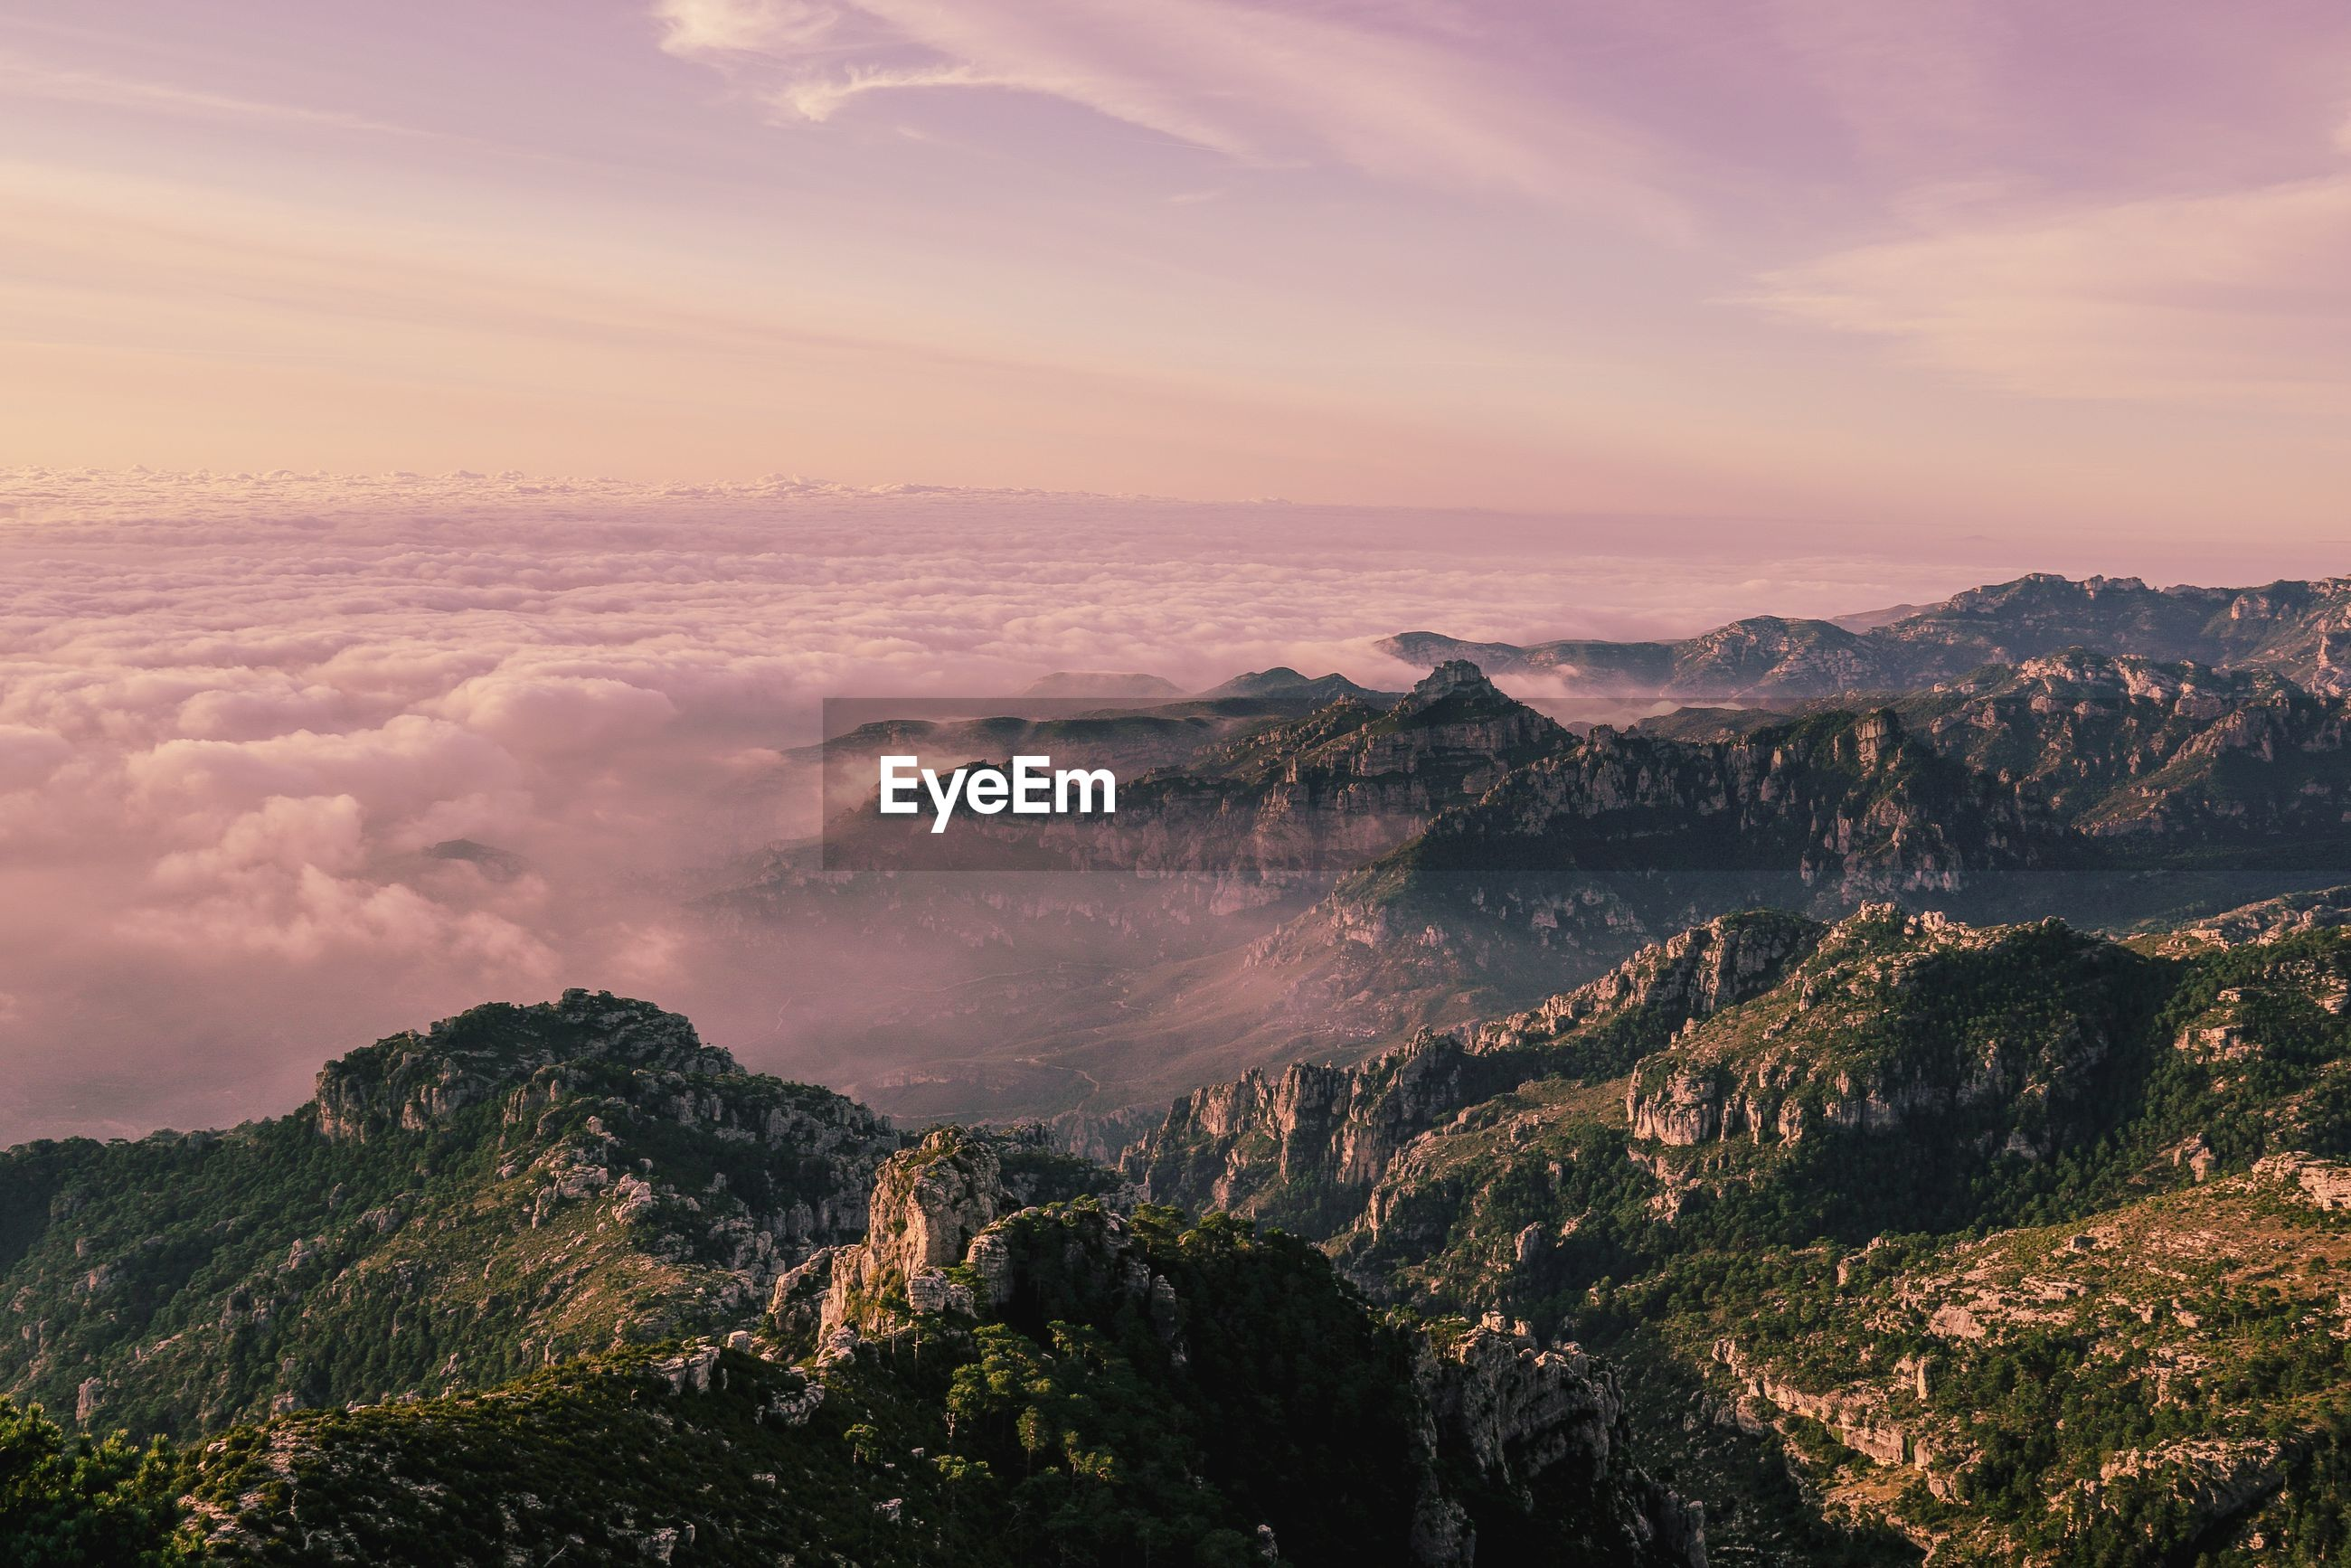 SCENIC VIEW OF MOUNTAIN AGAINST SKY AT SUNSET